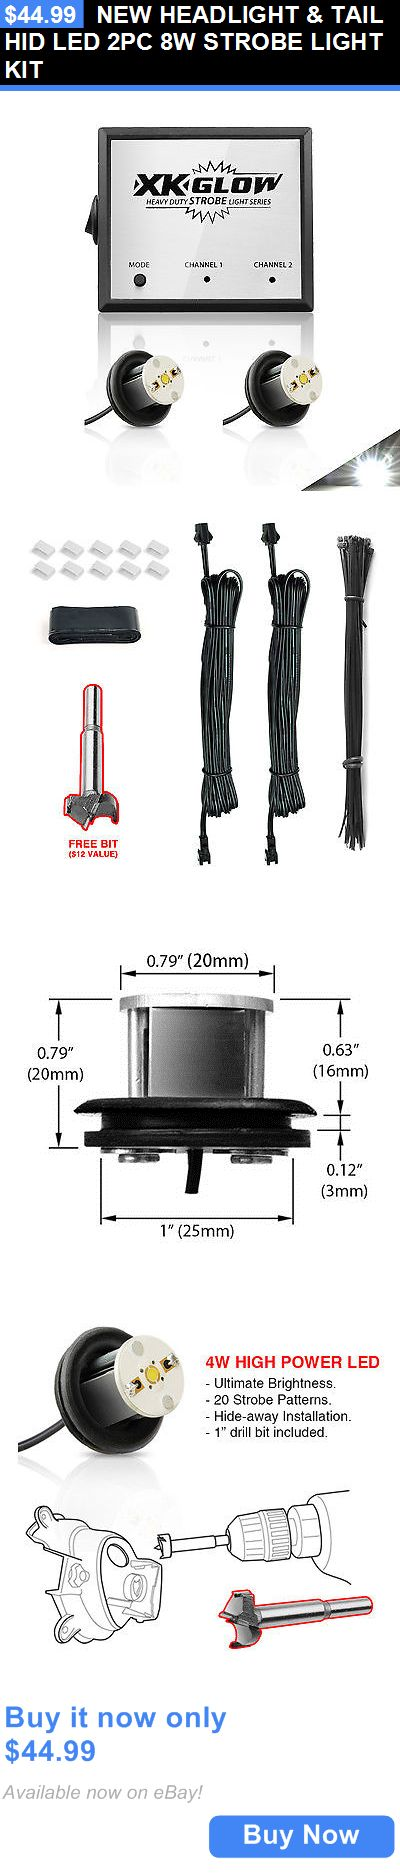 Motors Parts And Accessories: New Headlight And Tail Hid Led 2Pc 8W Strobe Light Kit BUY IT NOW ONLY: $44.99